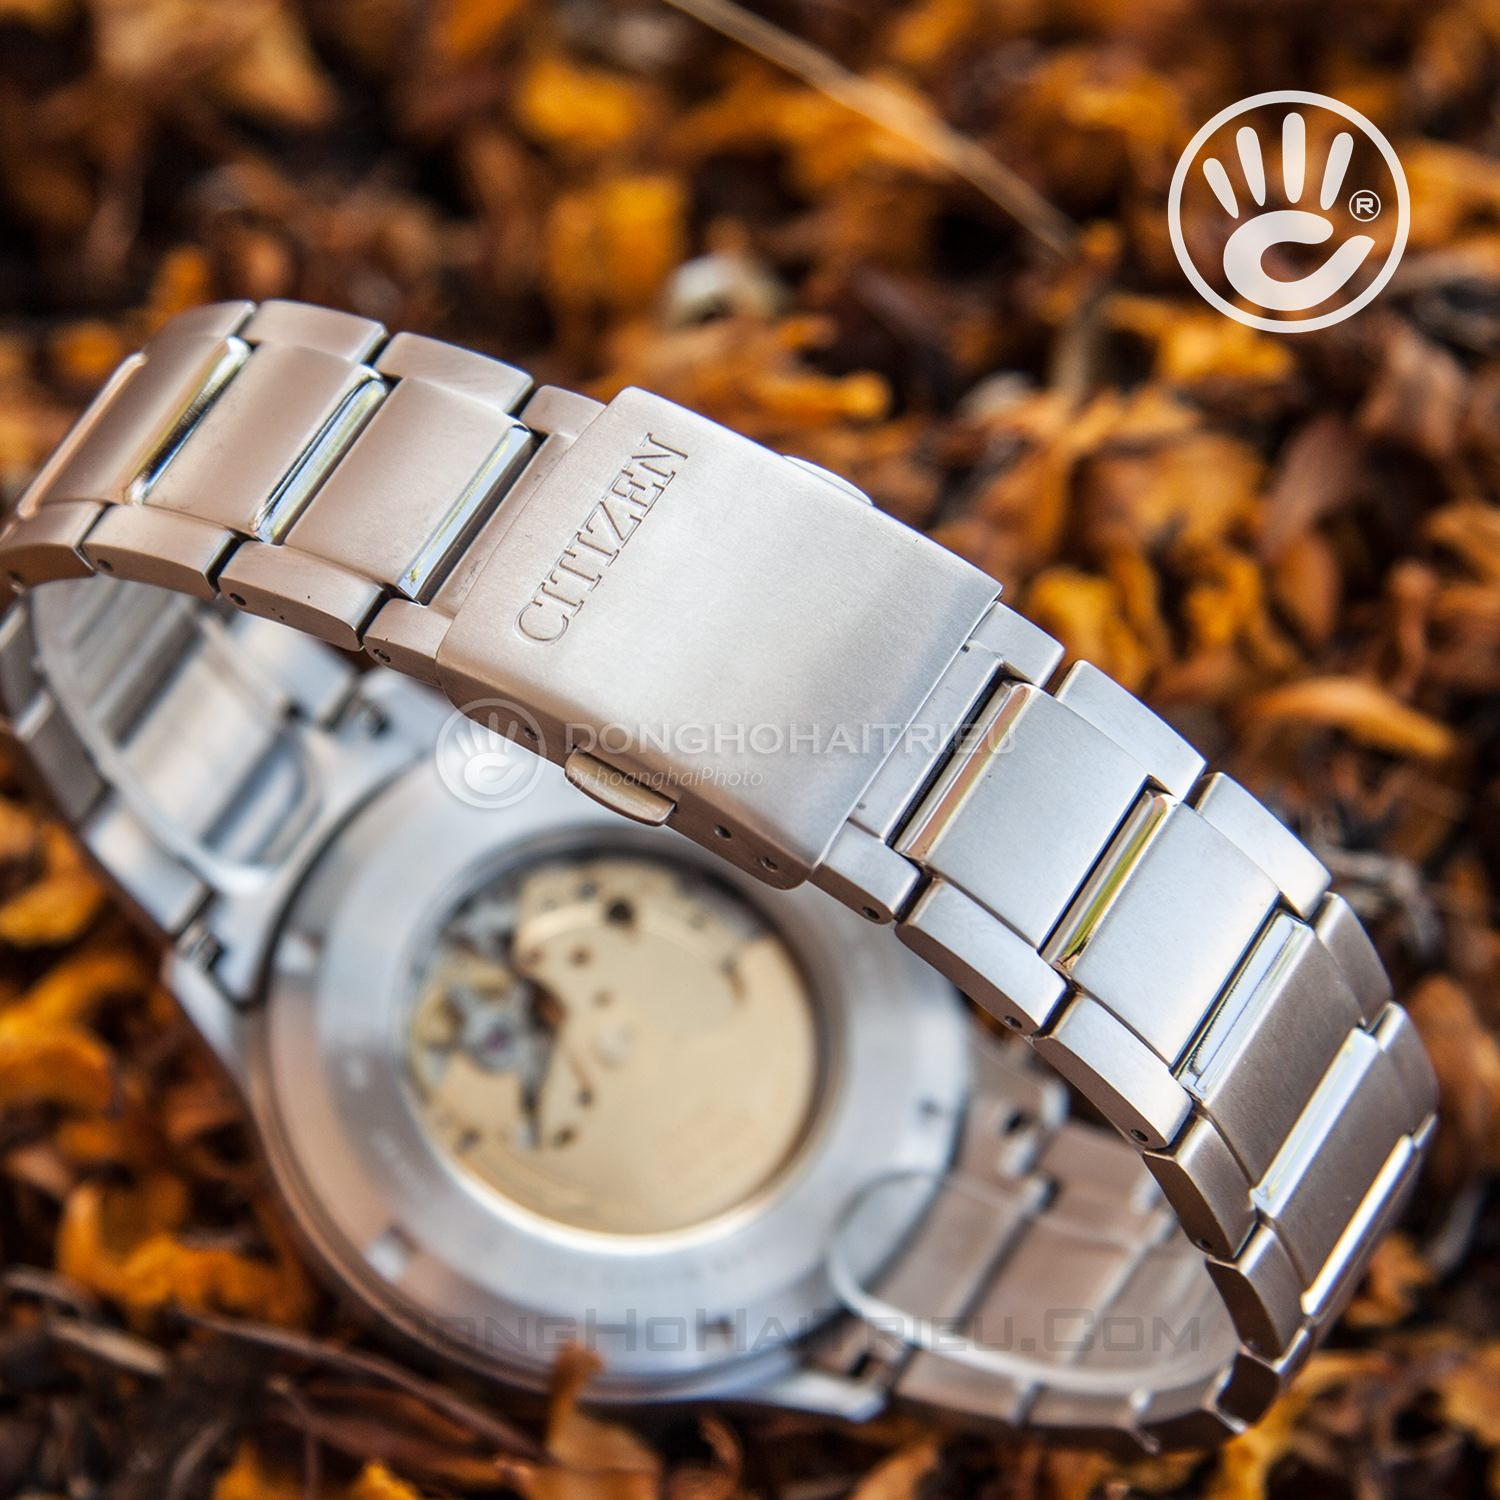 CITIZEN-NJ0090-81A-4